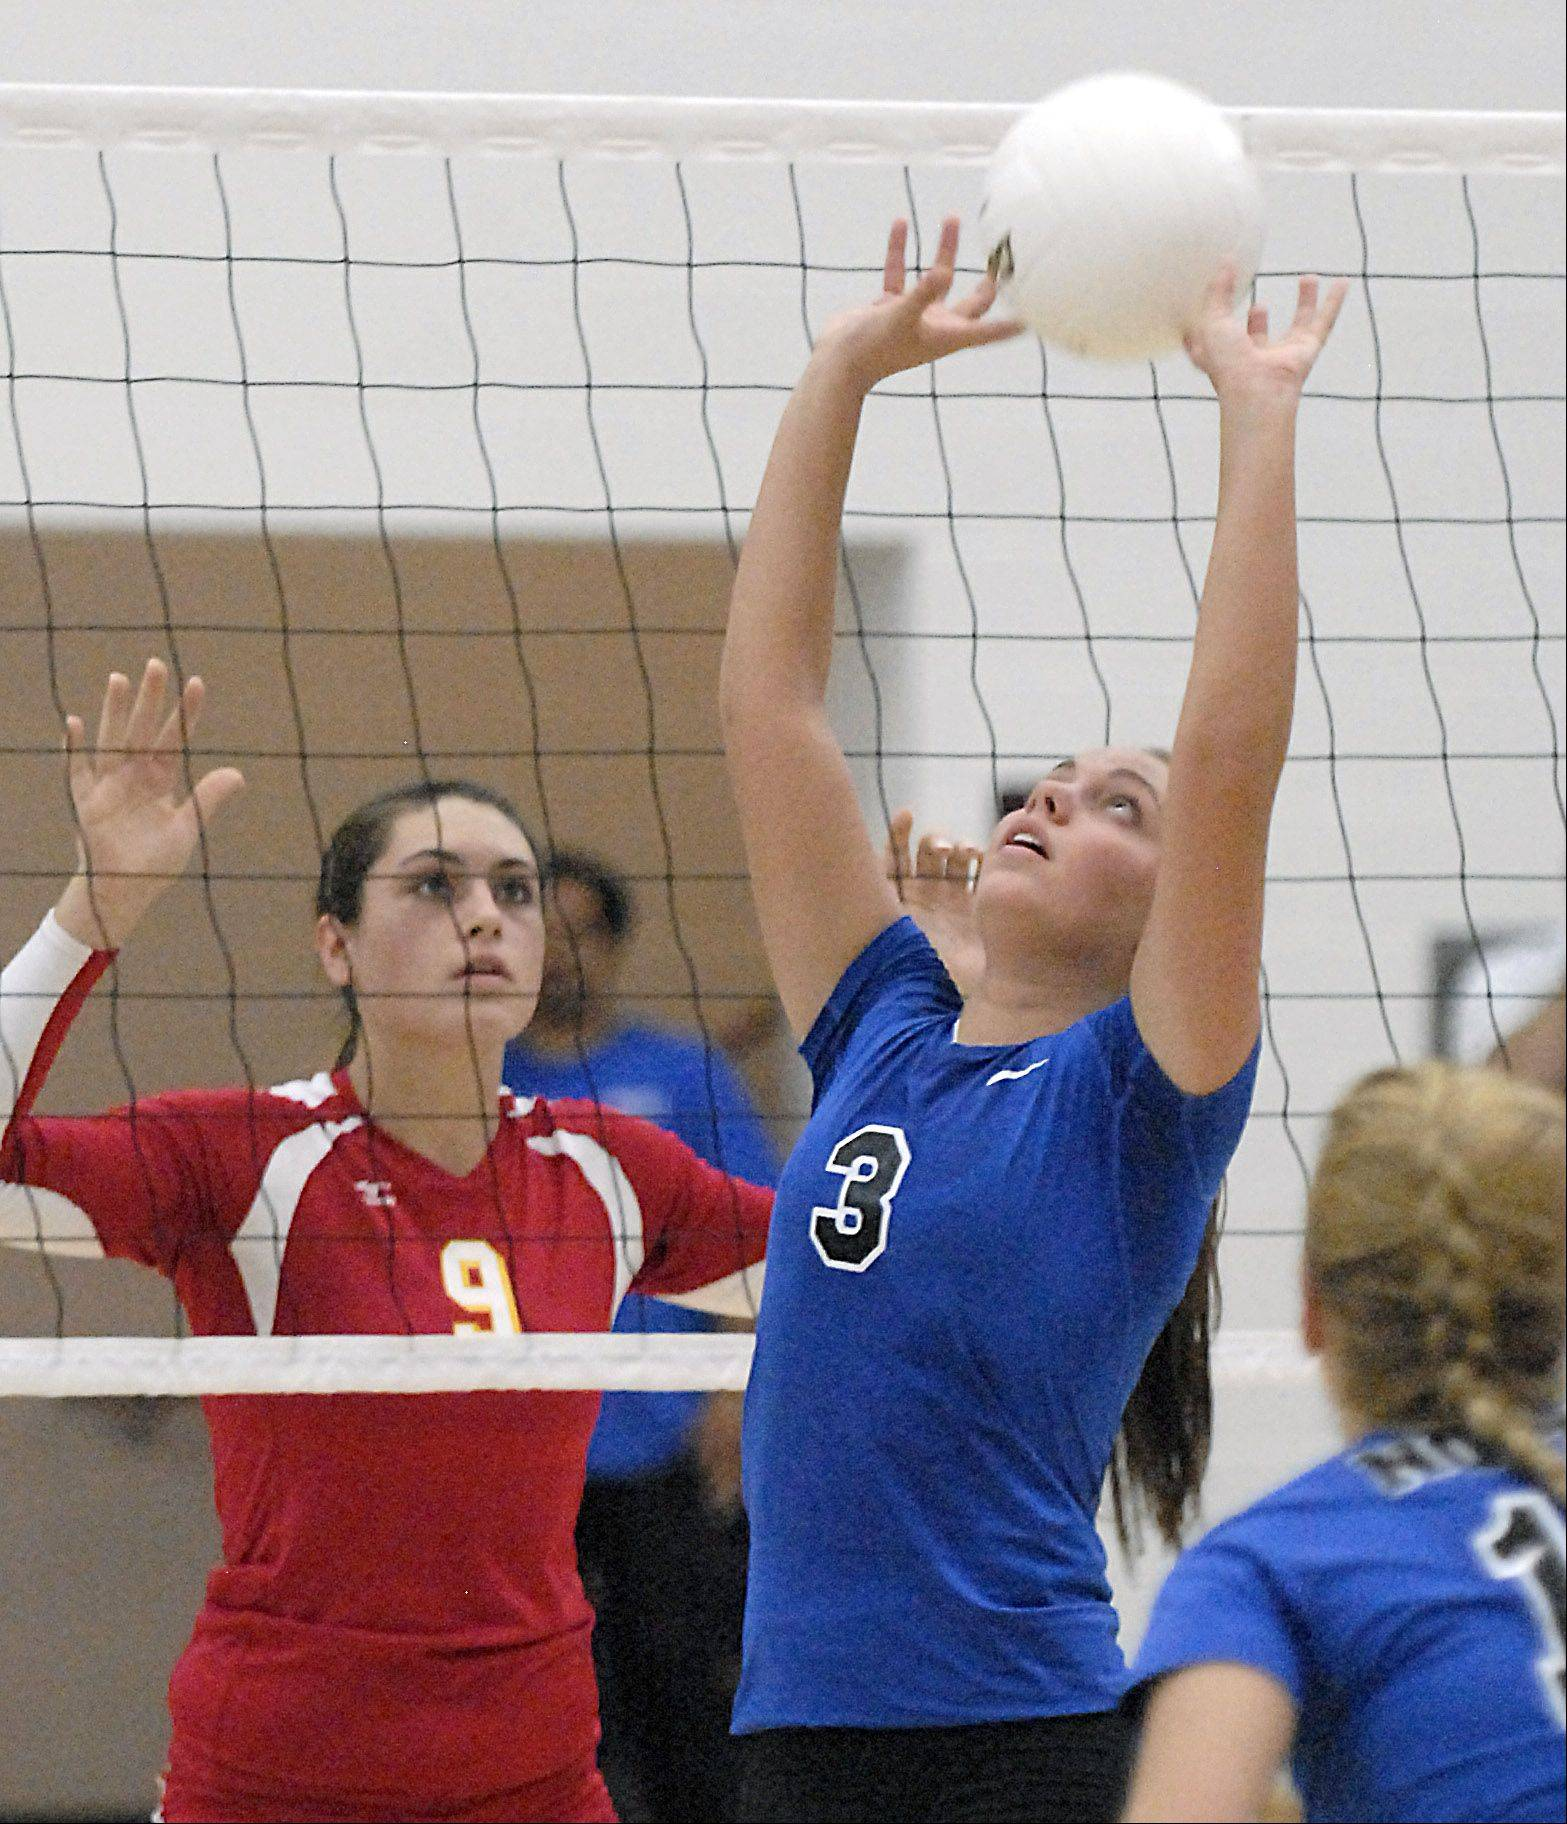 St. Charles North's Emily Belz sets up a spike as Batavia's Heather Meyer readies for it in game one on Tuesday, September 4.